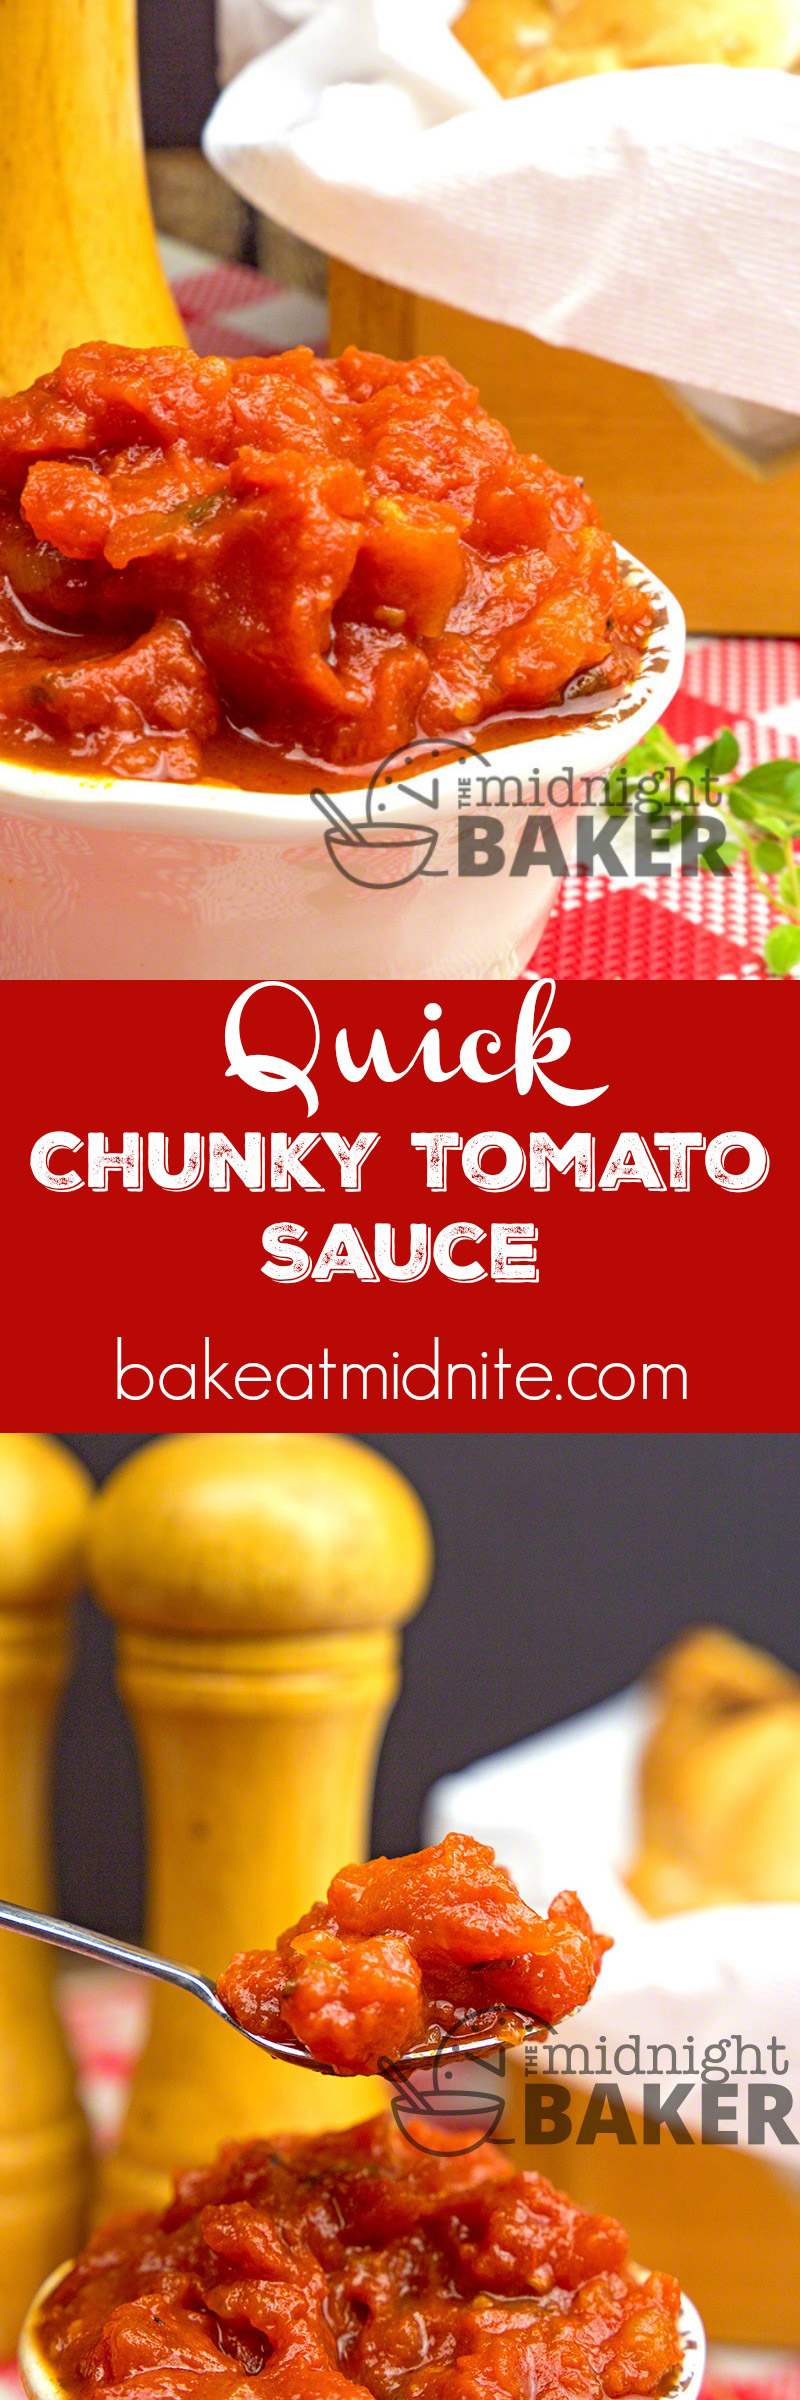 A quick chunky tomato sauce that can be used on pastas and many other dishes. All it takes is 15 minutes!